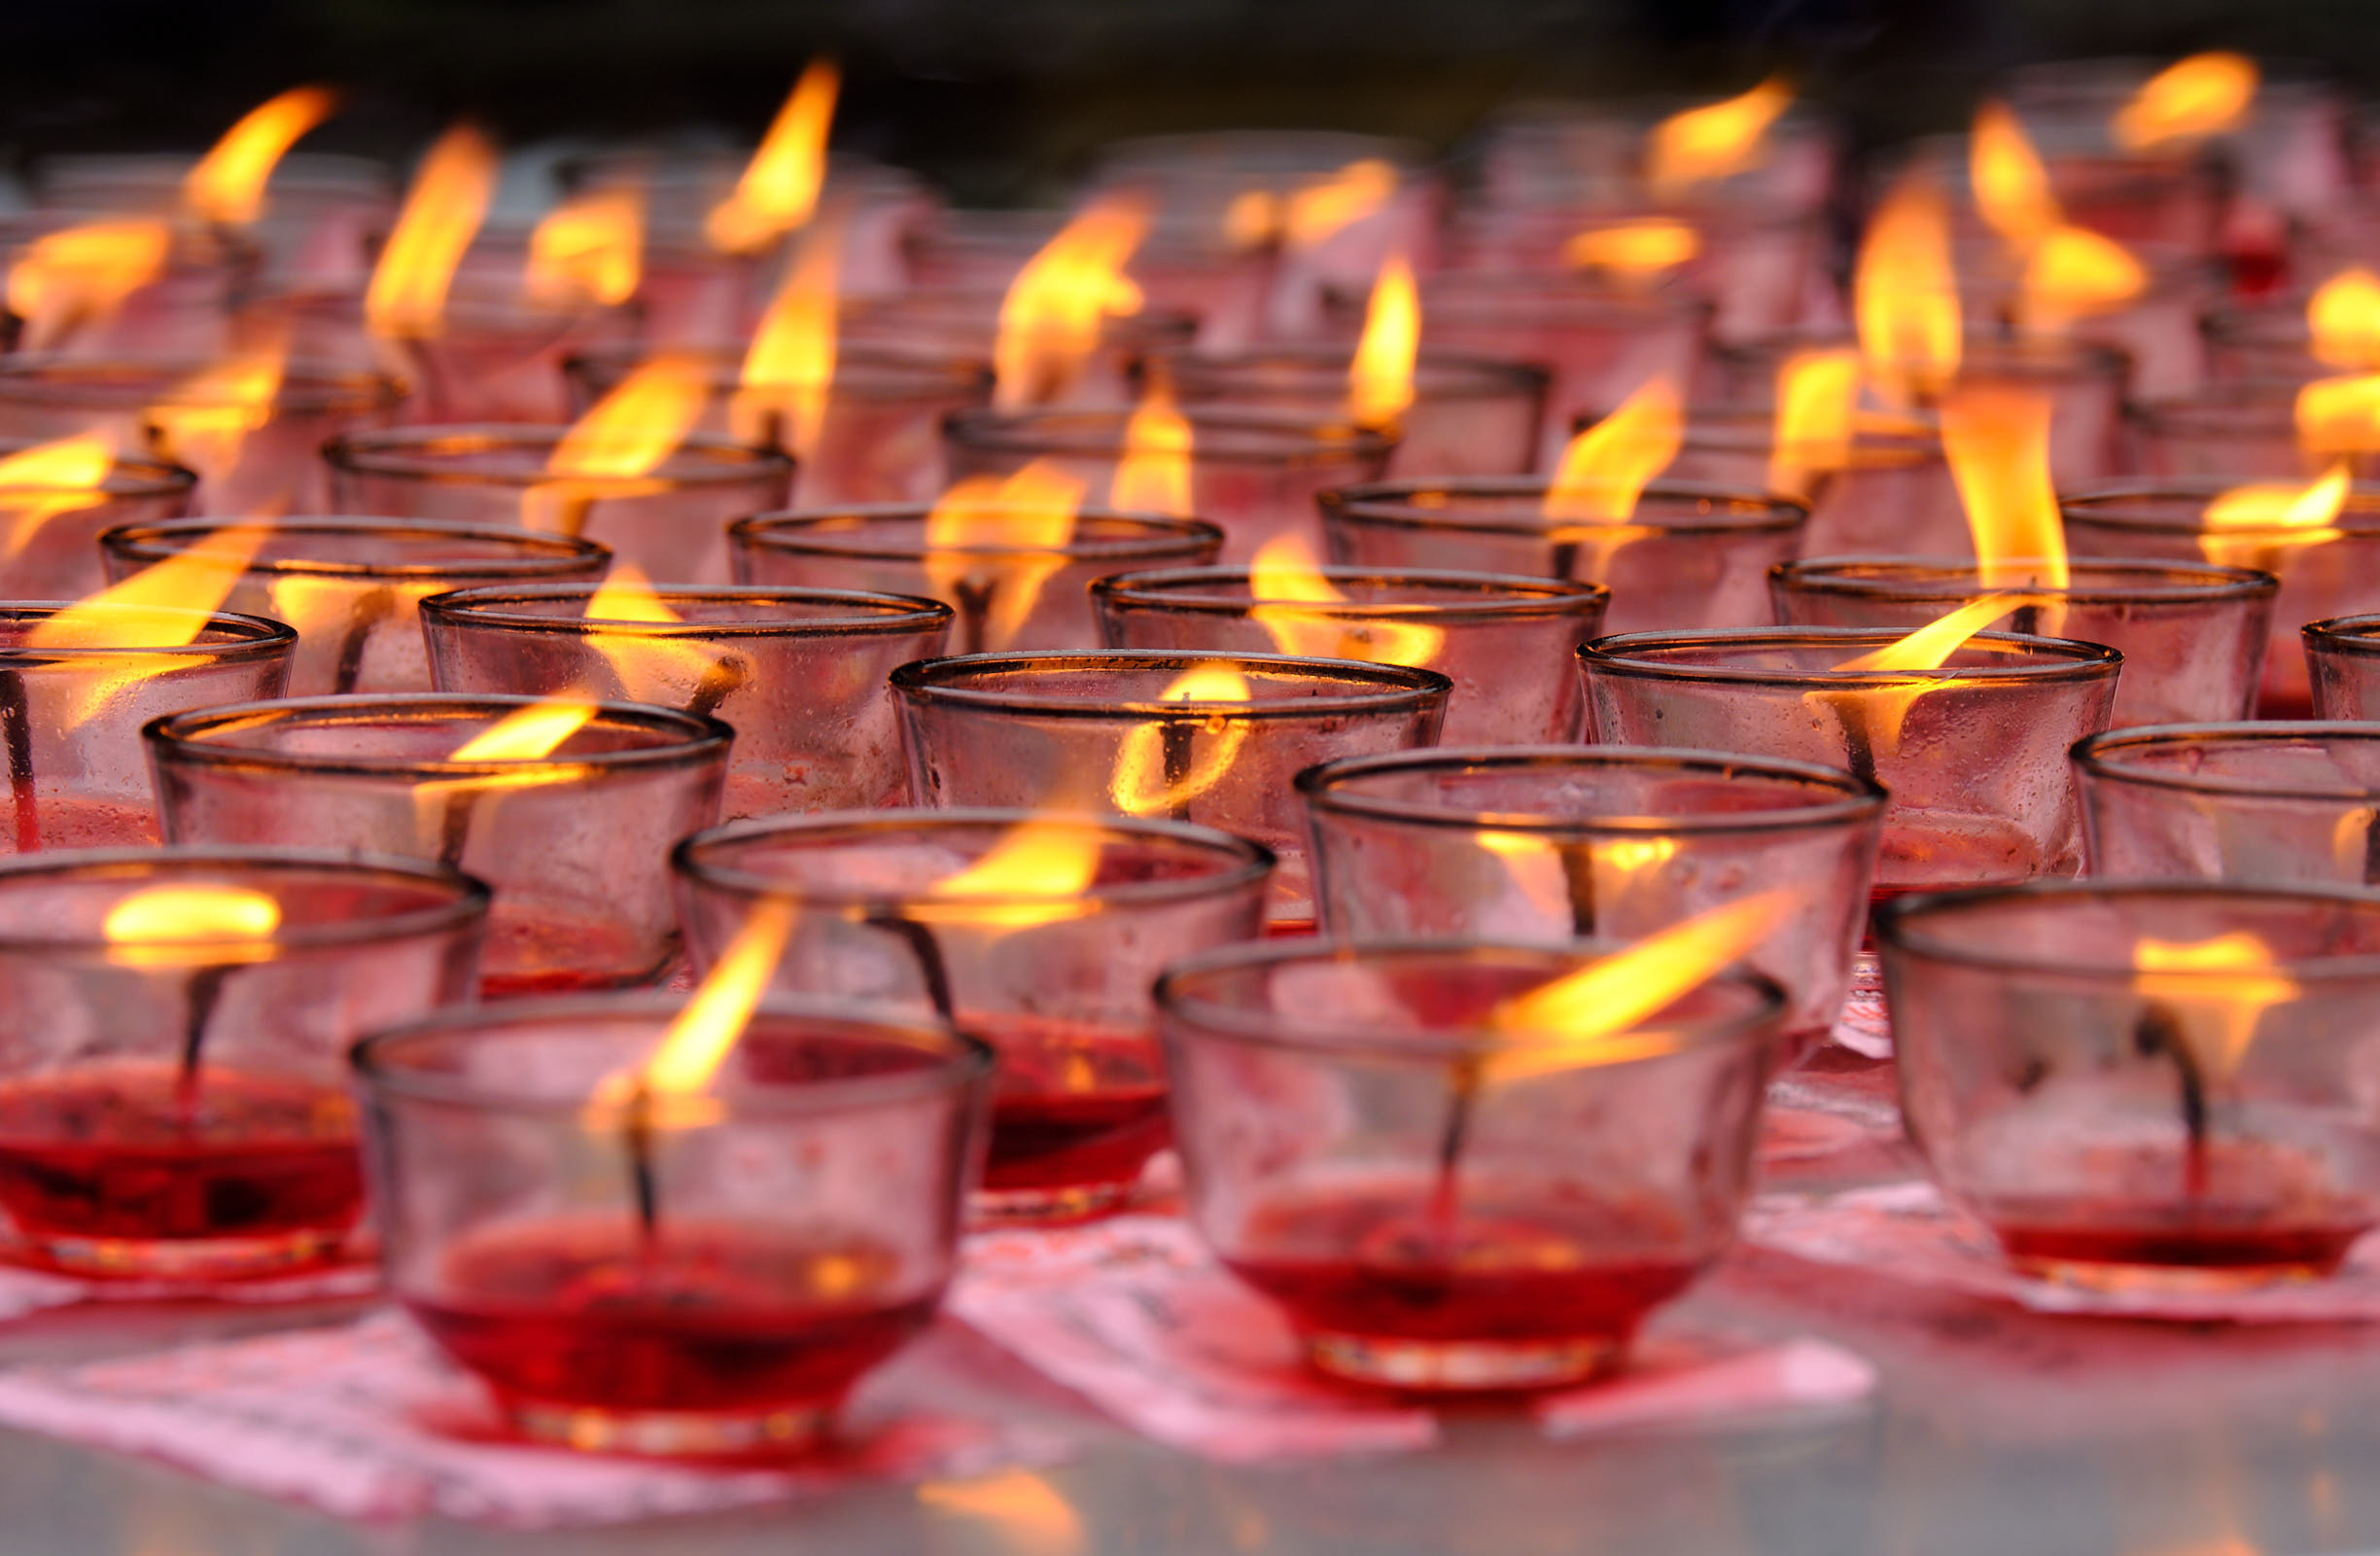 Candles at temple in Chengdu